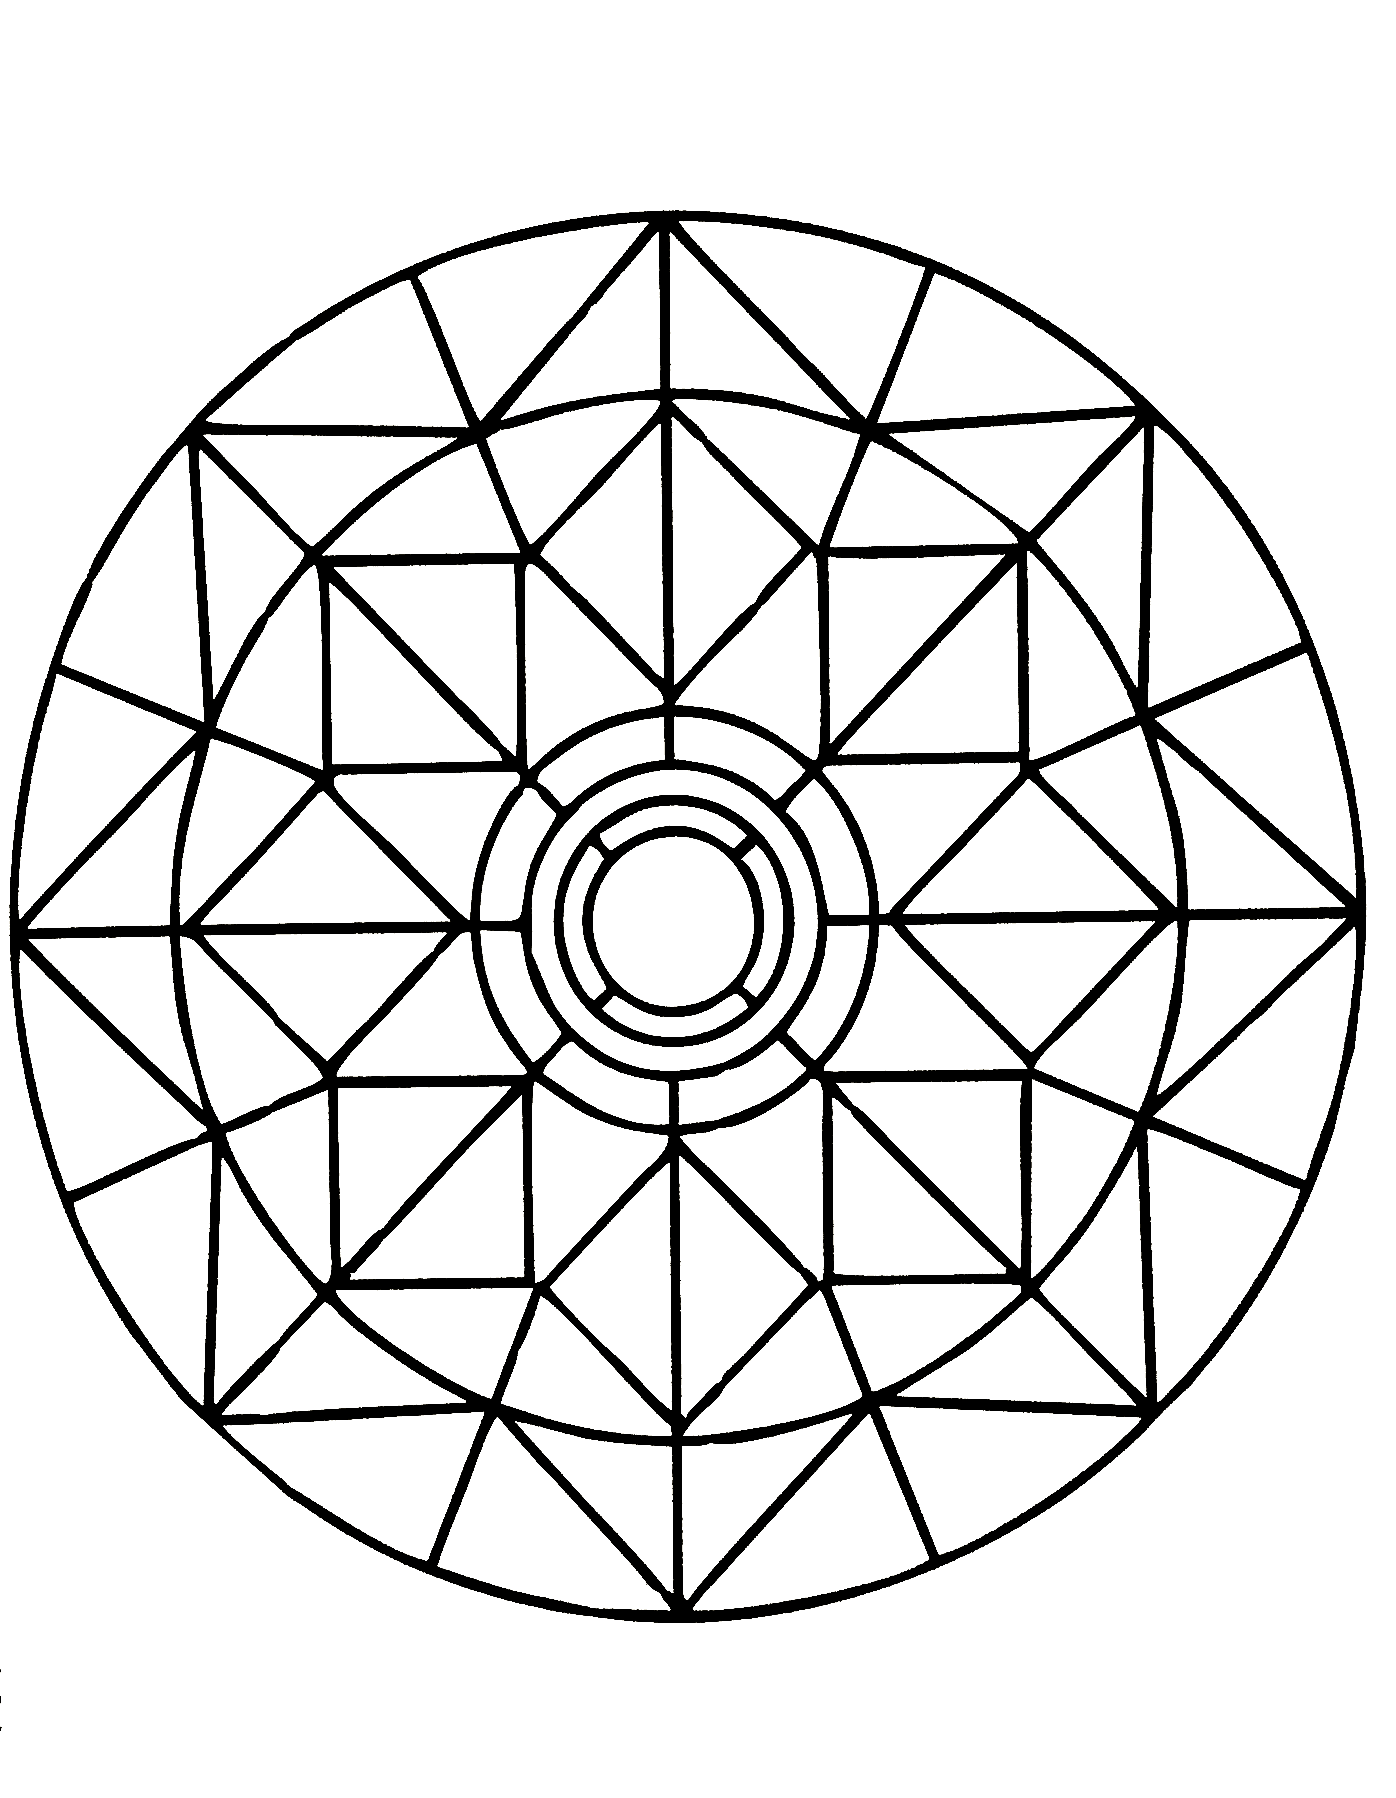 mandalas to color free mandalas to color free to mandalas color free